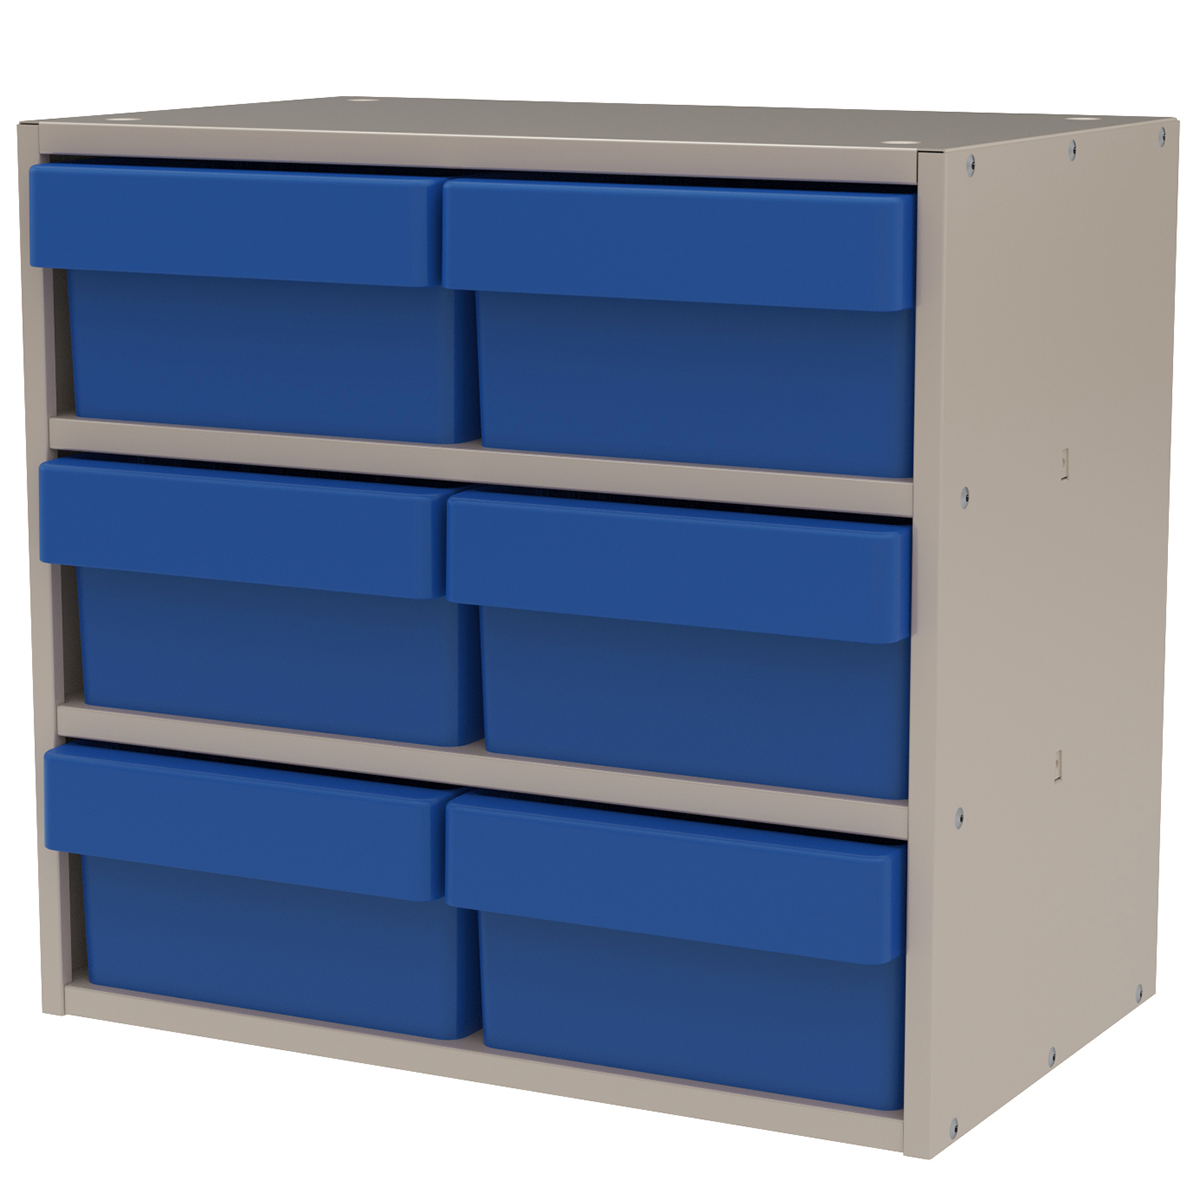 Item DISCONTINUED by Manufacturer.  Modular Cabinet, 18x11x16, 6 Drawers, Putty/Blue (AD1811P82BLU).  This item sold in carton quantities of 1.